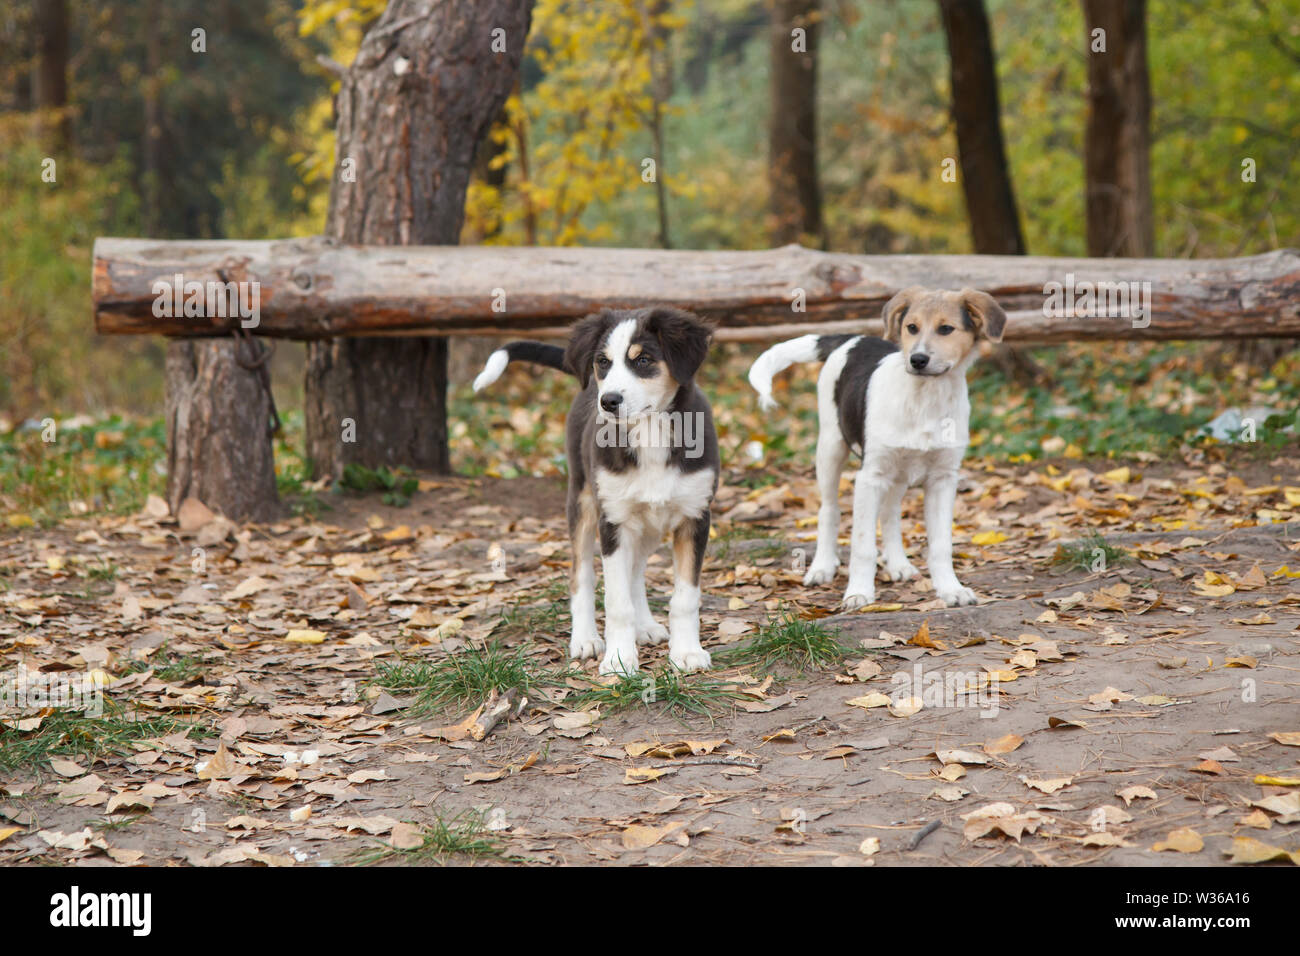 Homeless little dogs looking at something on the road in the forest in autumn. - Stock Image